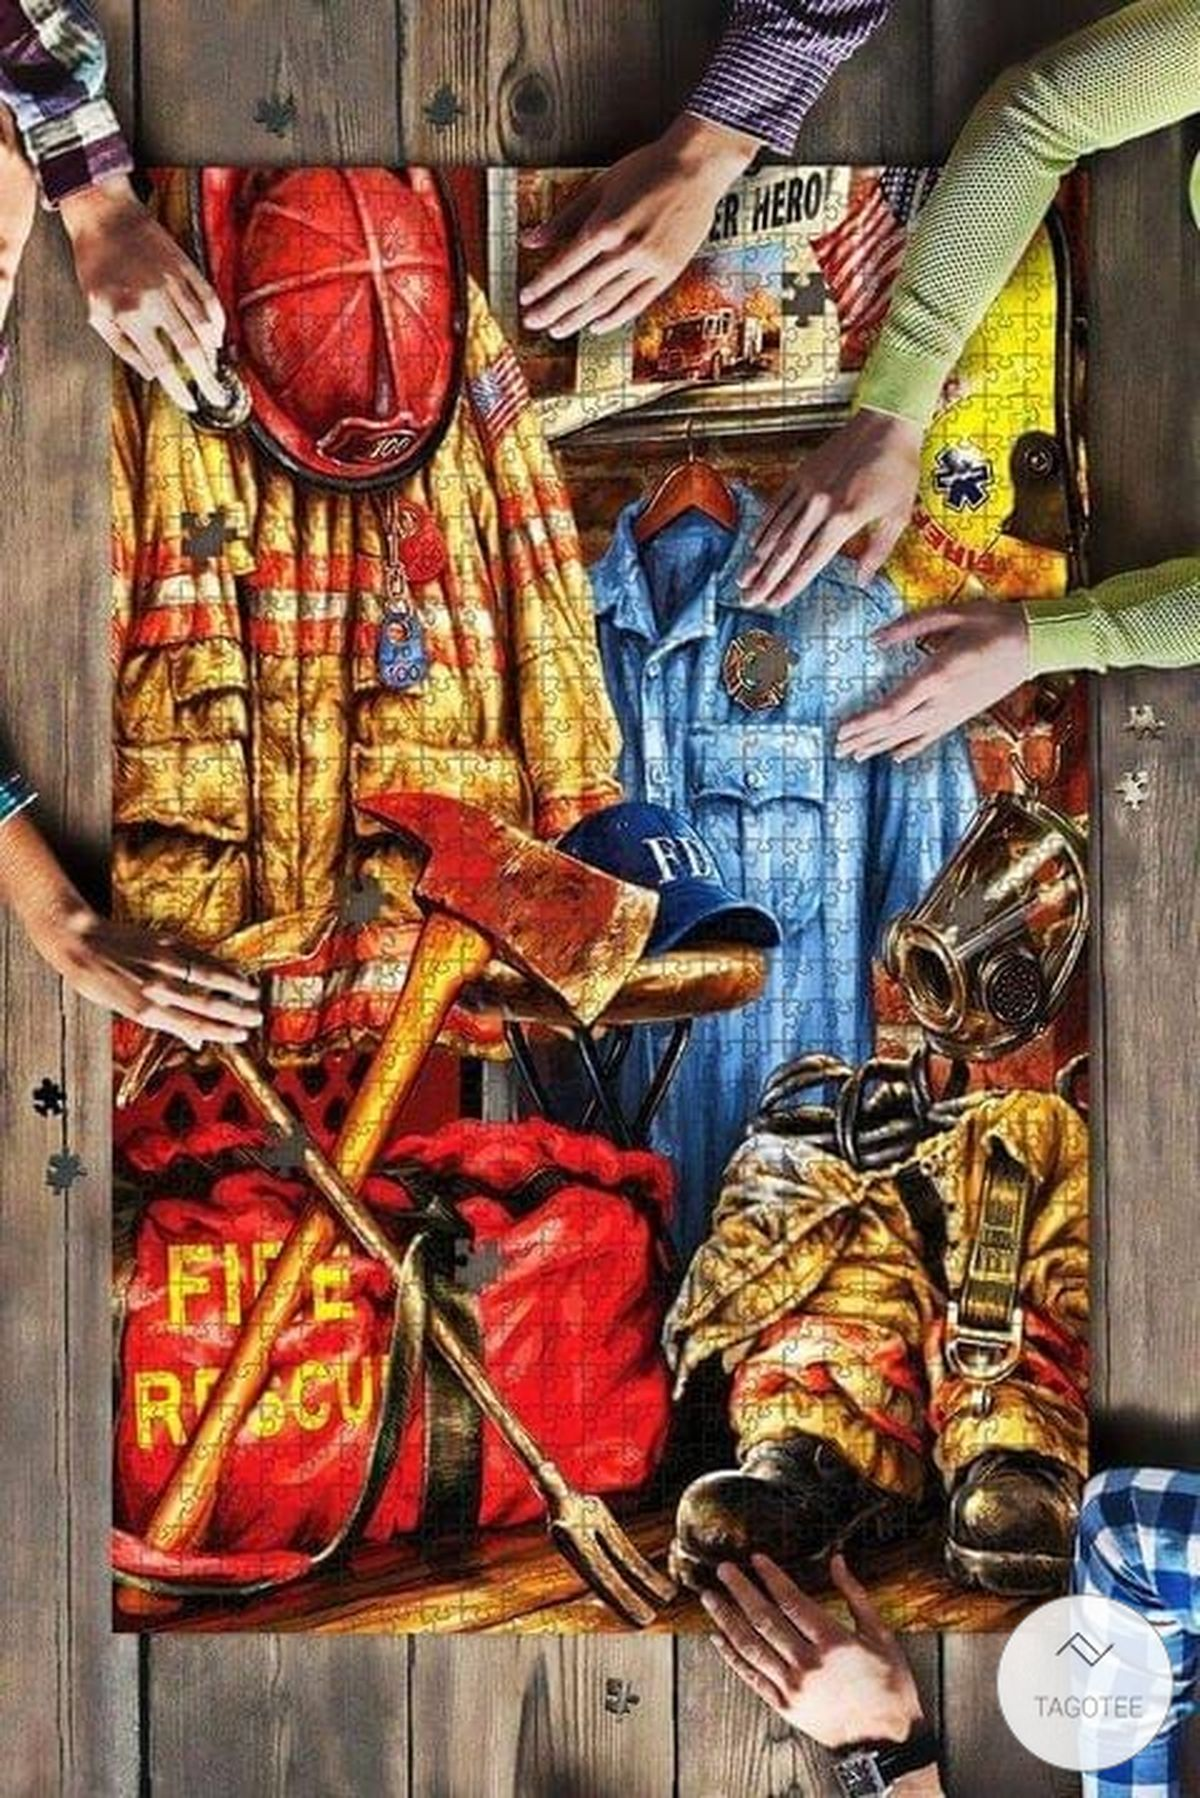 Firefighter Jigsaw Puzzle